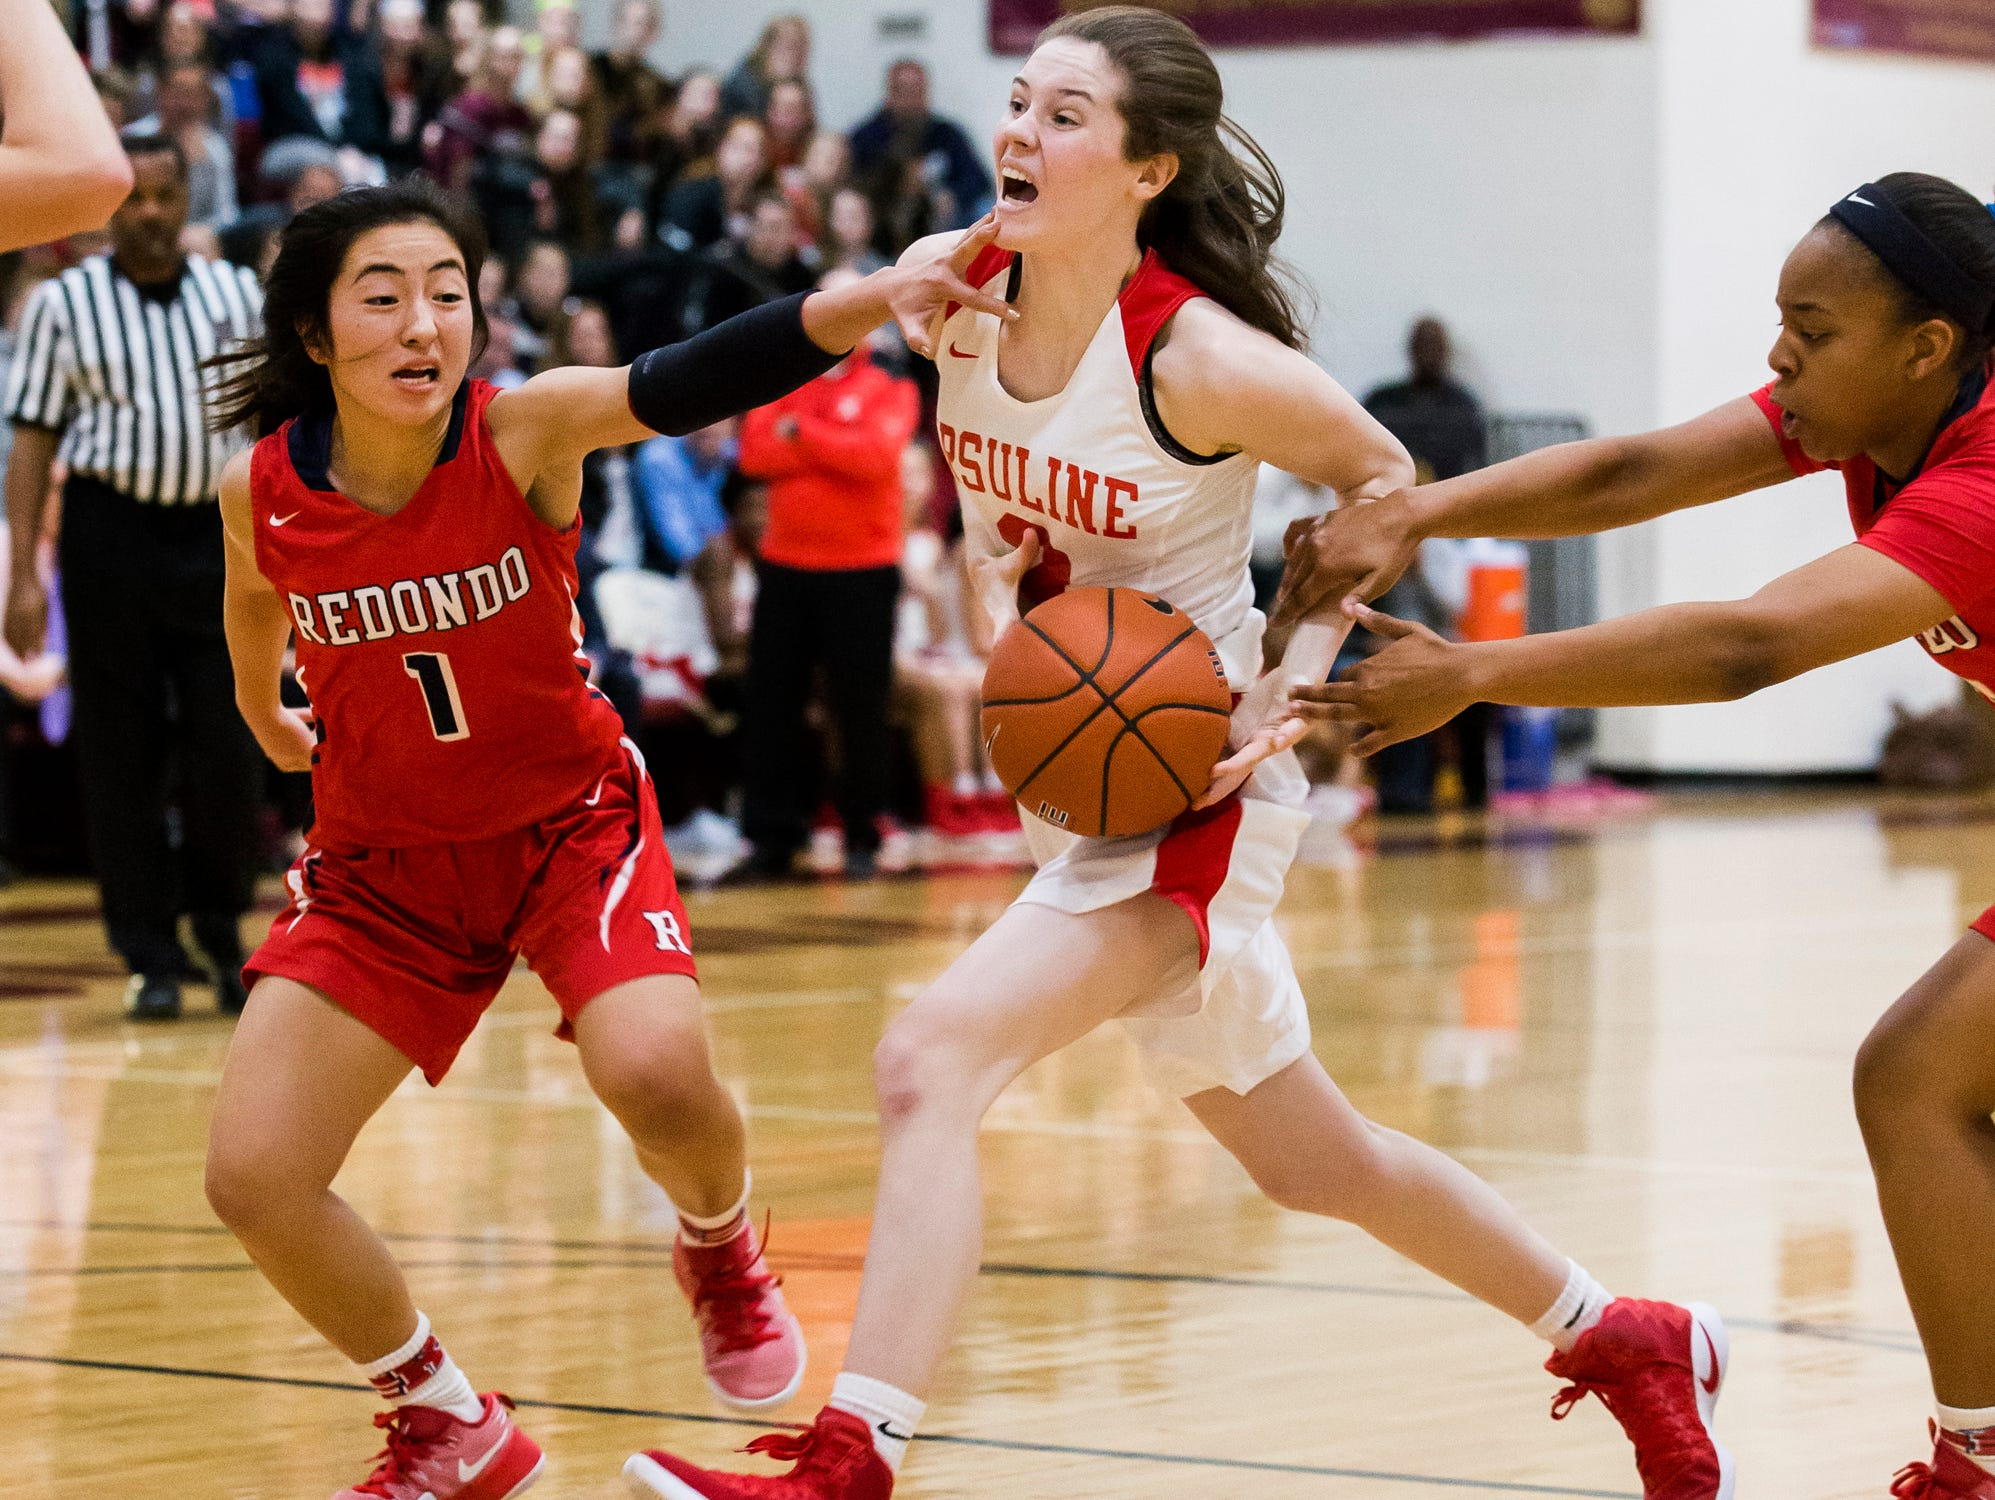 Ursuline's Magie Connolly is fouled as she cuts to the basket through a pair of Redondo Union defenders in the first half of Ursuline's 39-26 win over Redondo Union High School in the Diamond State Classic at St. Elizabeth High School in Wilmington on Tuesday night.